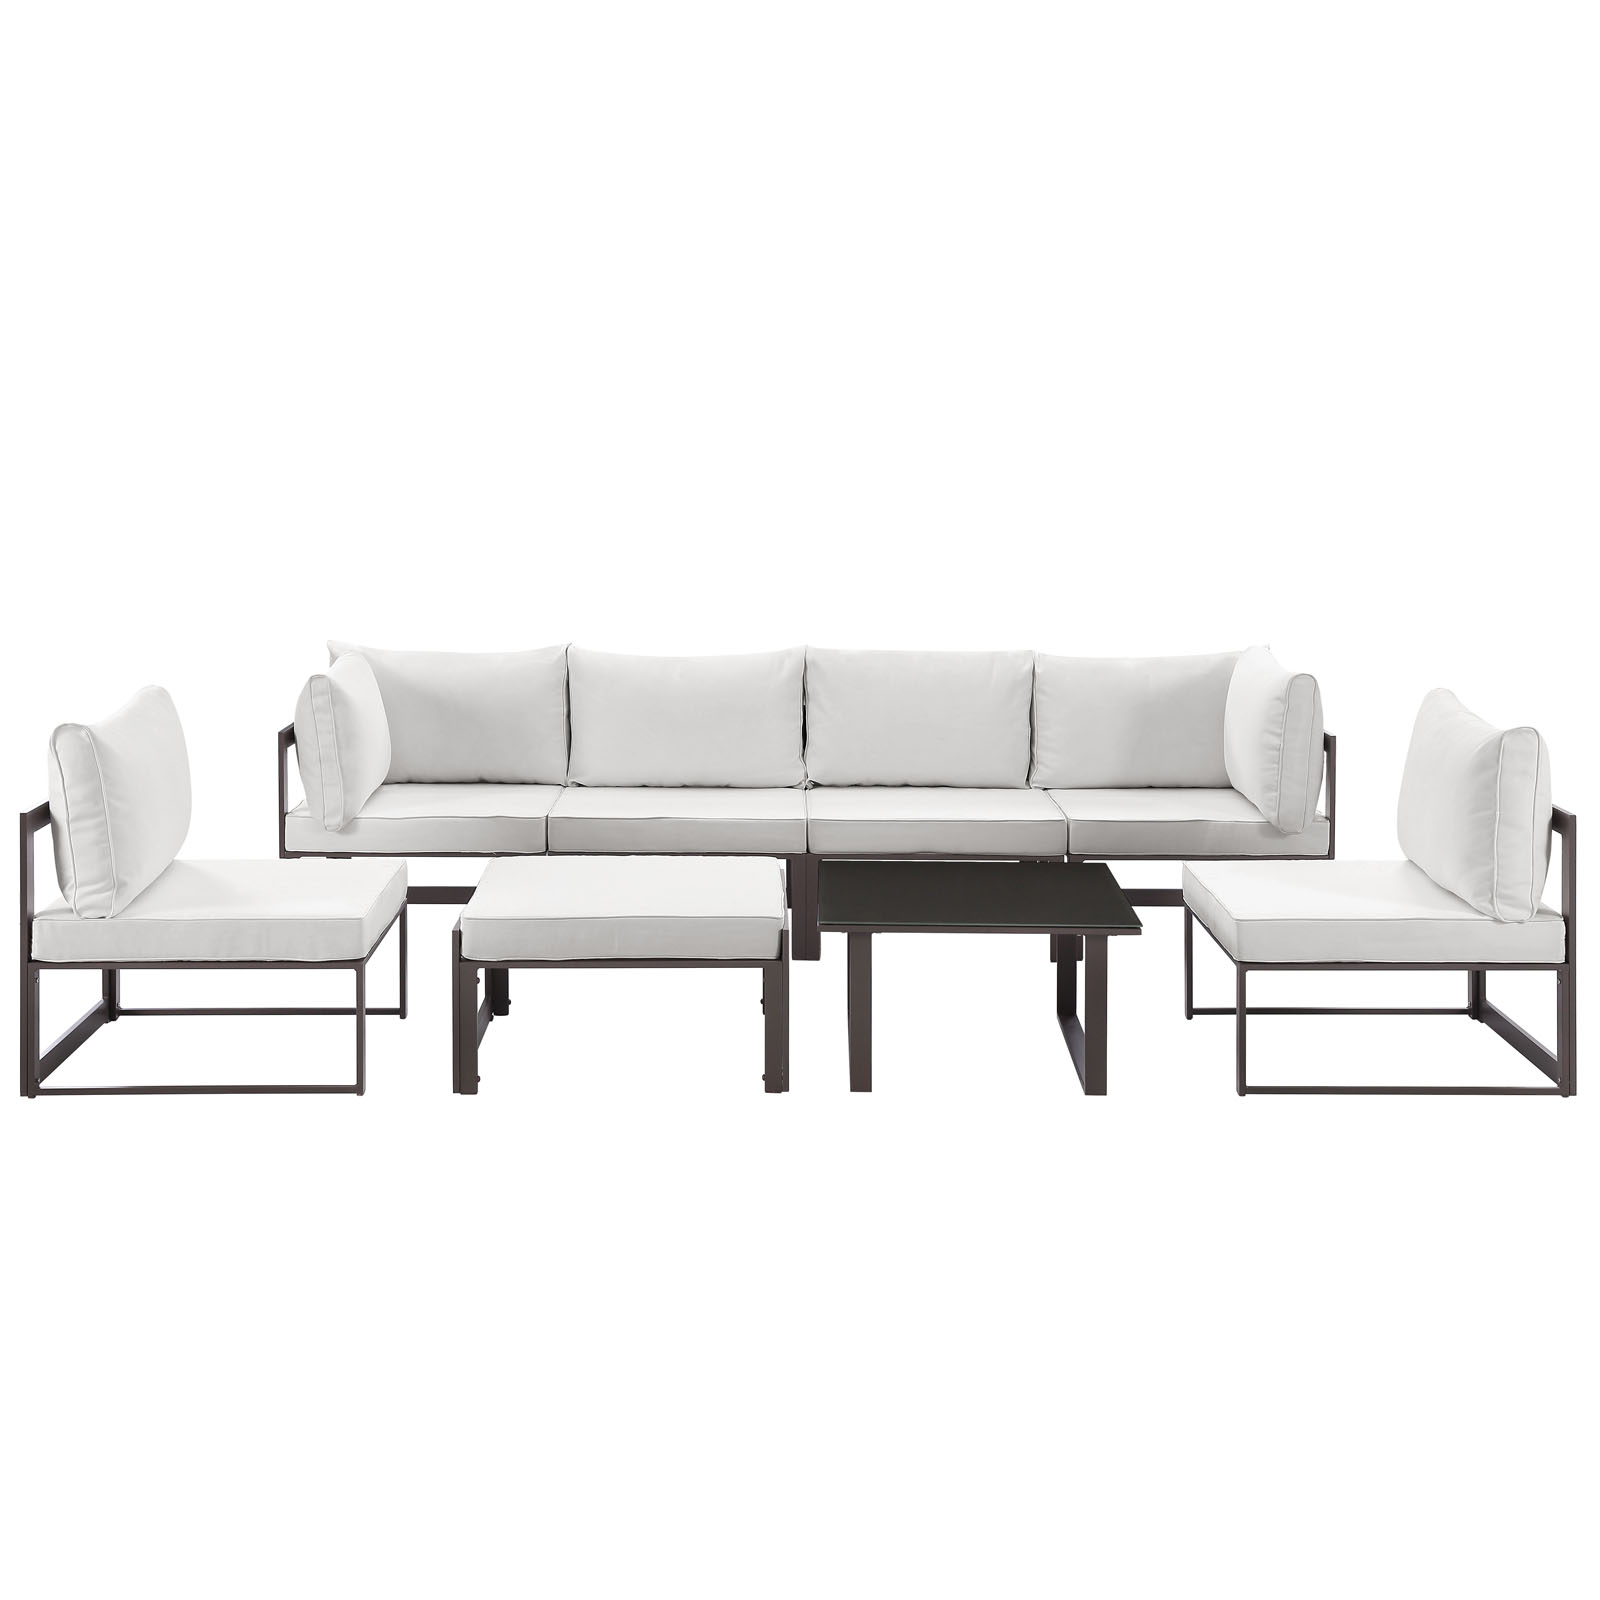 Modern Urban Contemporary 8 Pcs Outdoor Patio Sectional Sofa Set, Brown White  Fabric Steel